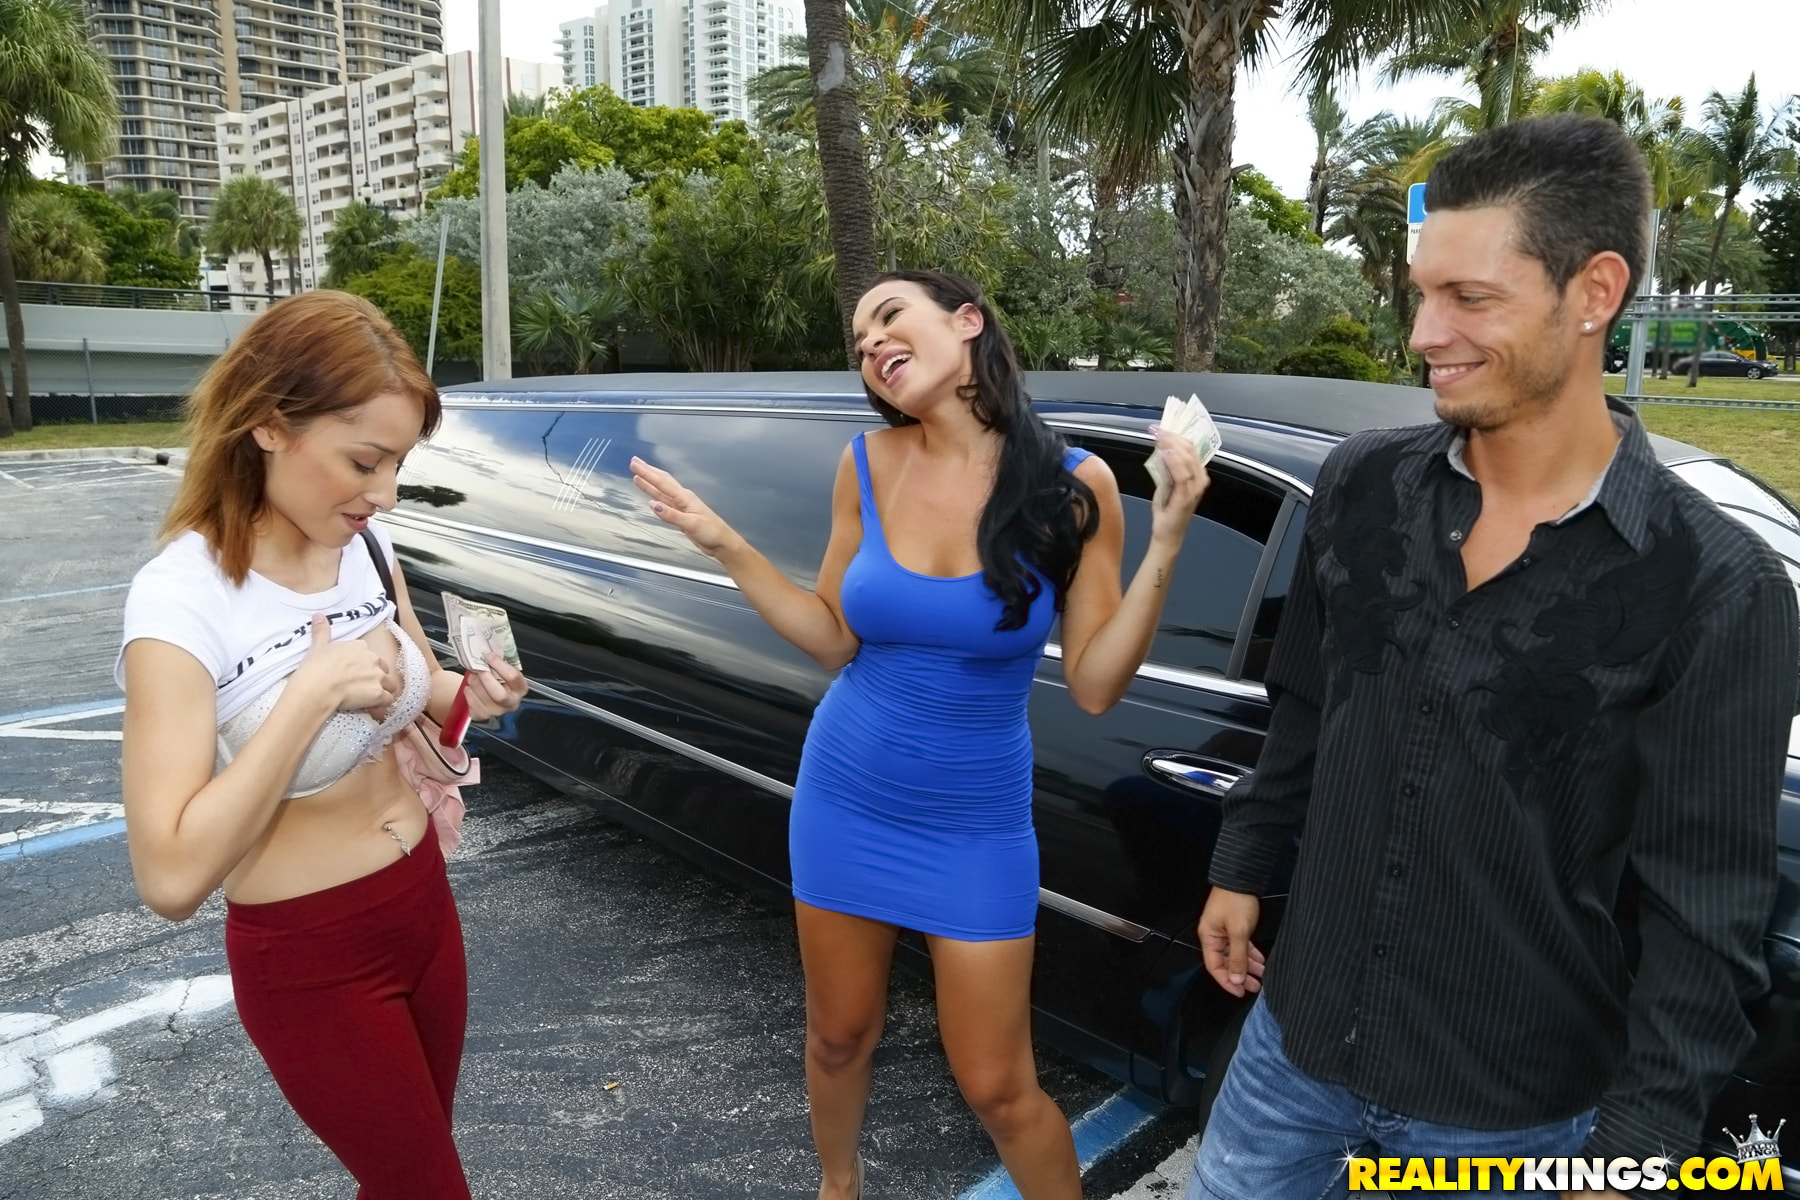 Reality Kings 'Along for the ride' starring Sophia Leone (Photo 140)